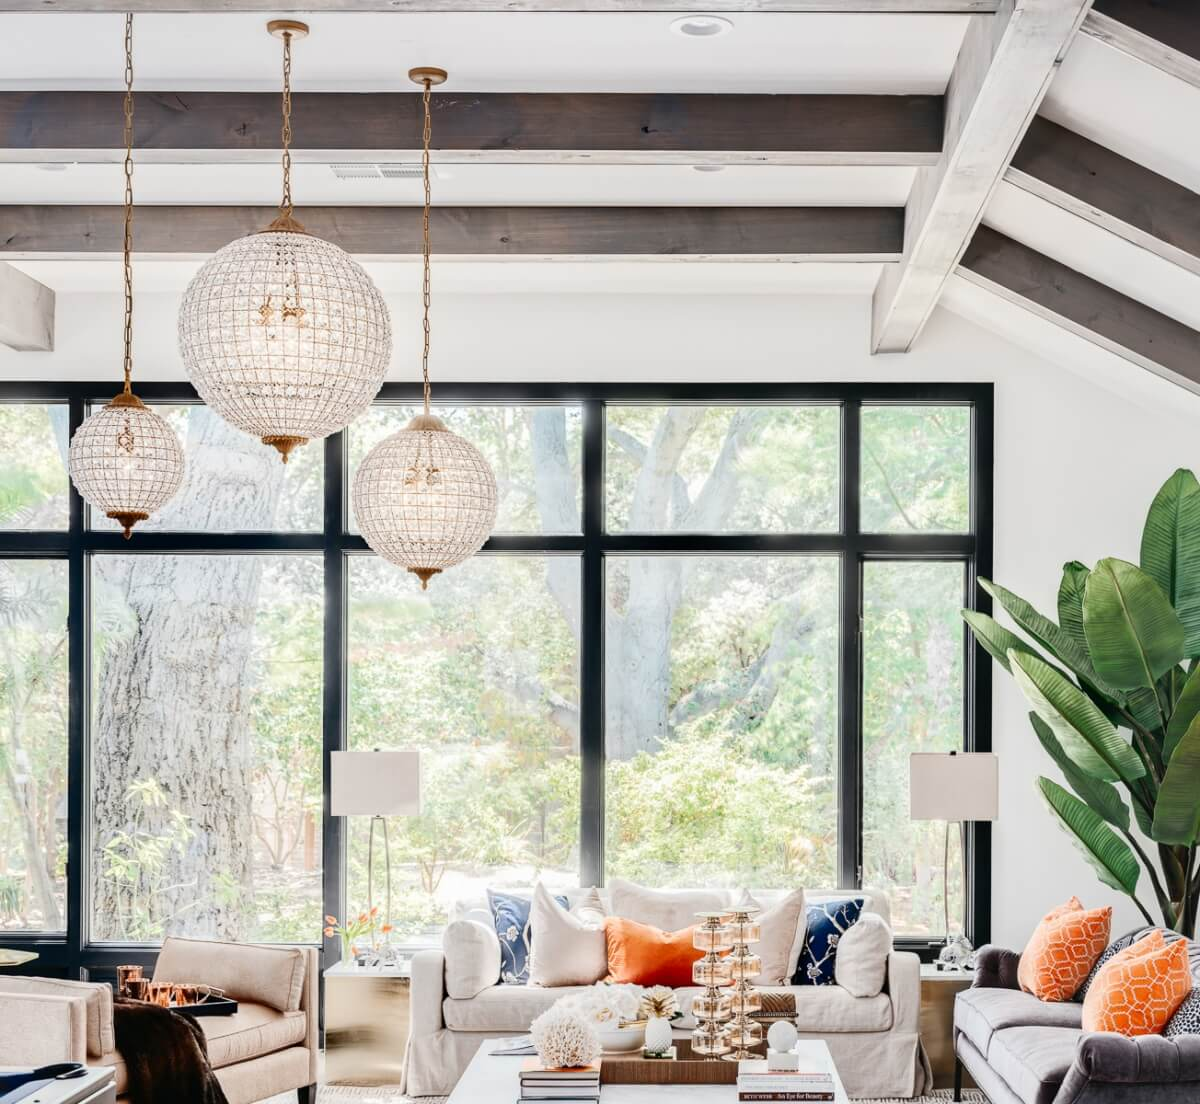 Large oversized circular pendant lighting in a very trending interior design.